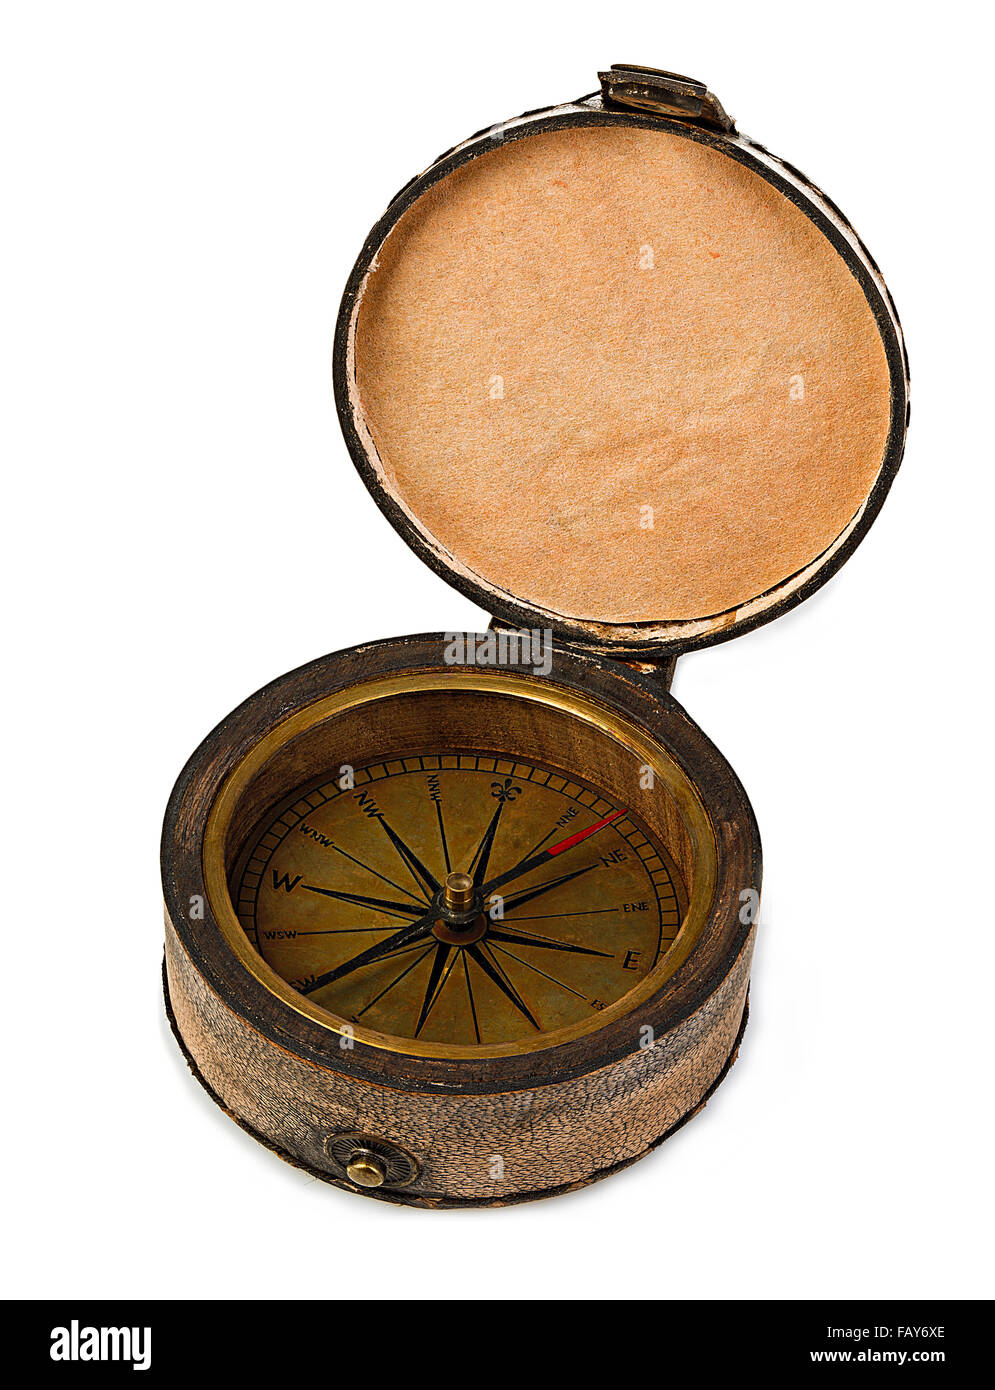 Vintage copper compass in a leather case isolated on a white background. - Stock Image